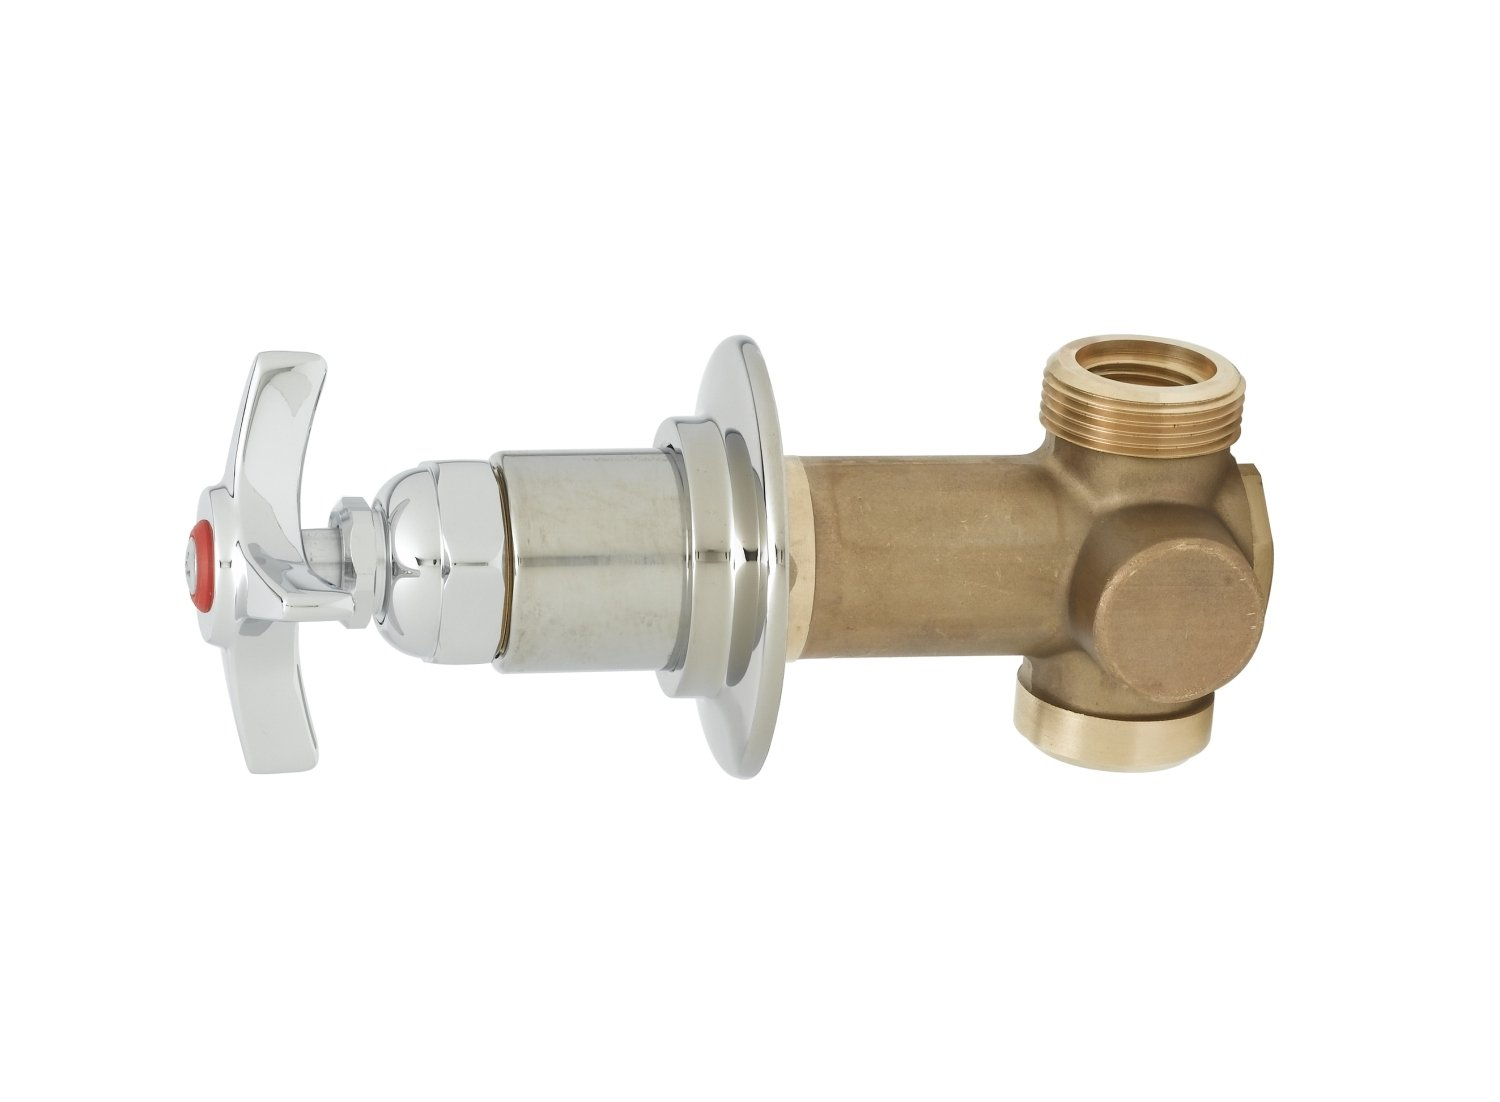 T&S Brass B-1020-1 Concealed Bypass Valve, 1/2-Inch Npt Female Inlet and Outlet, 4-Arm Handle, Hot Index by T&S Brass